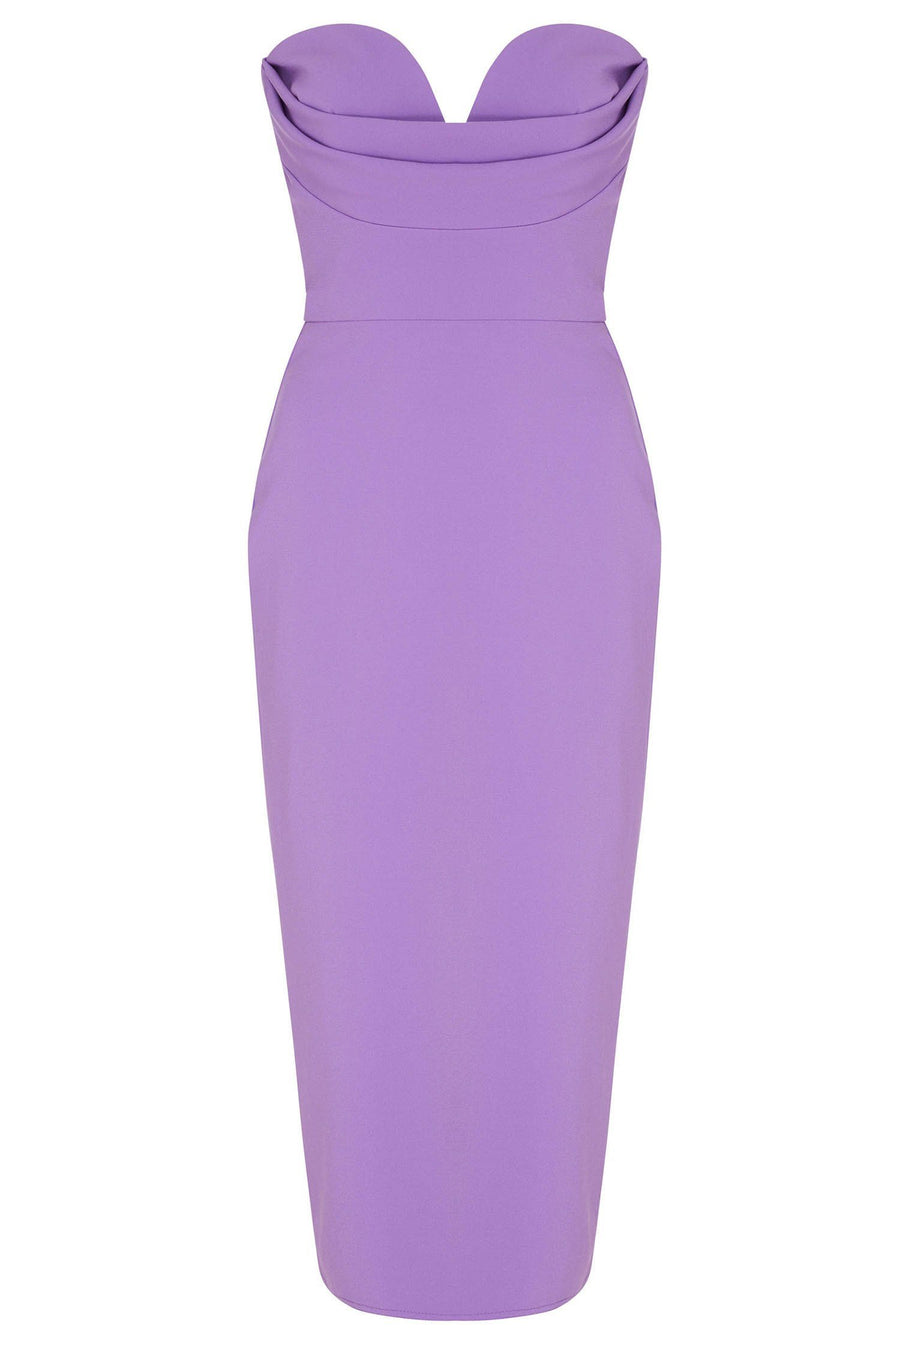 Corley Stretch Sweetheart Dress in Lilac